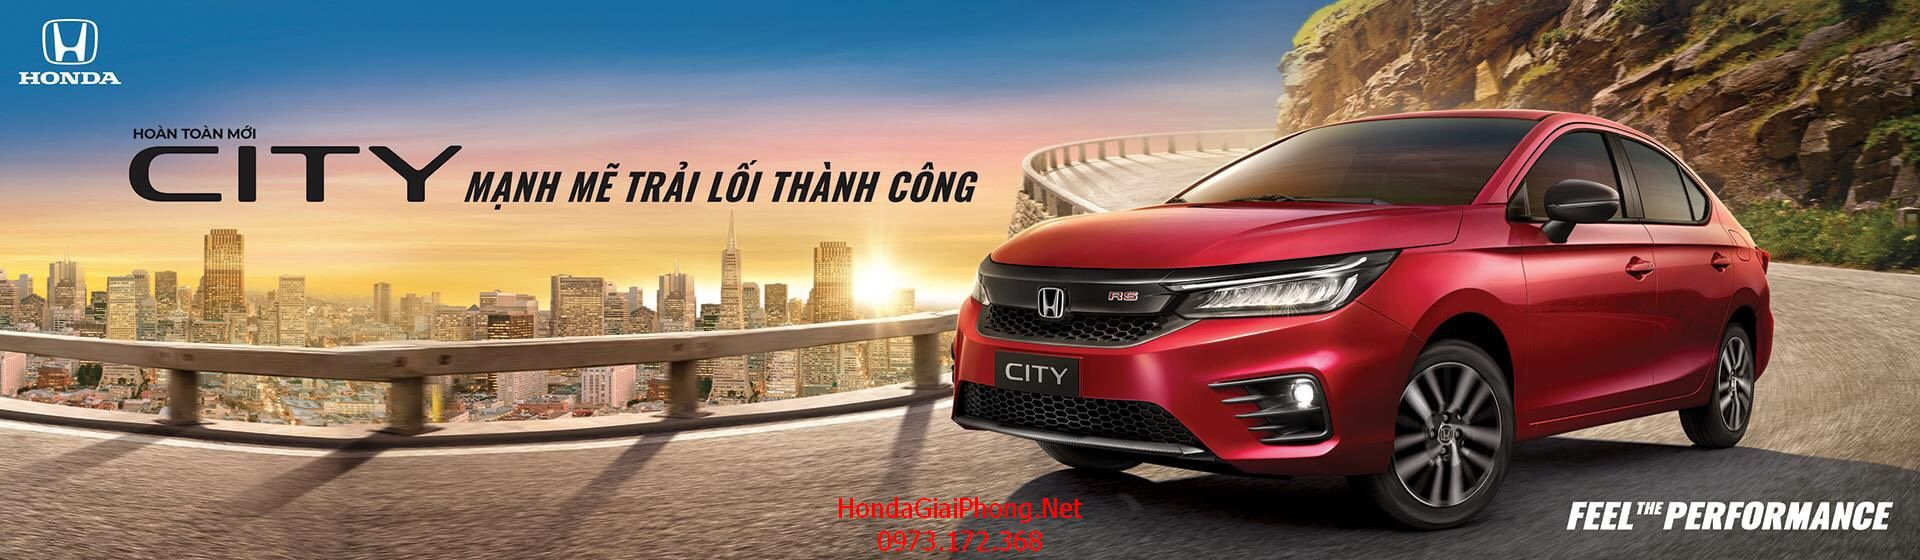 01 banner top xe honda city rs 2021 viet nam